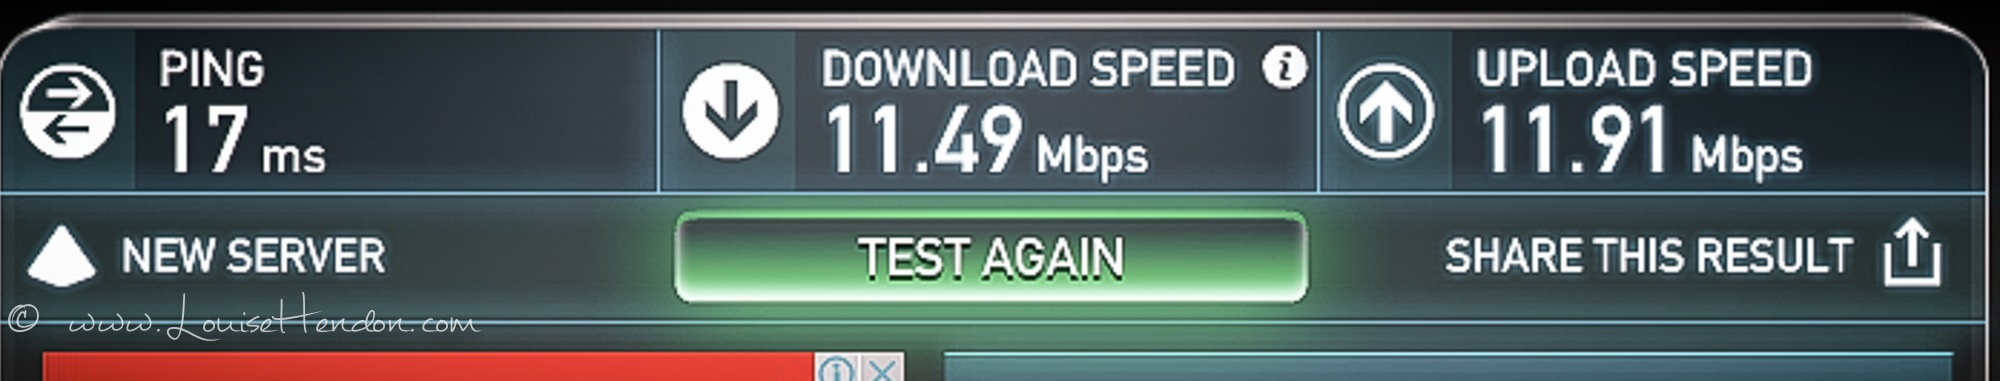 ais wifi speed at ristr8to chiang mai thailand